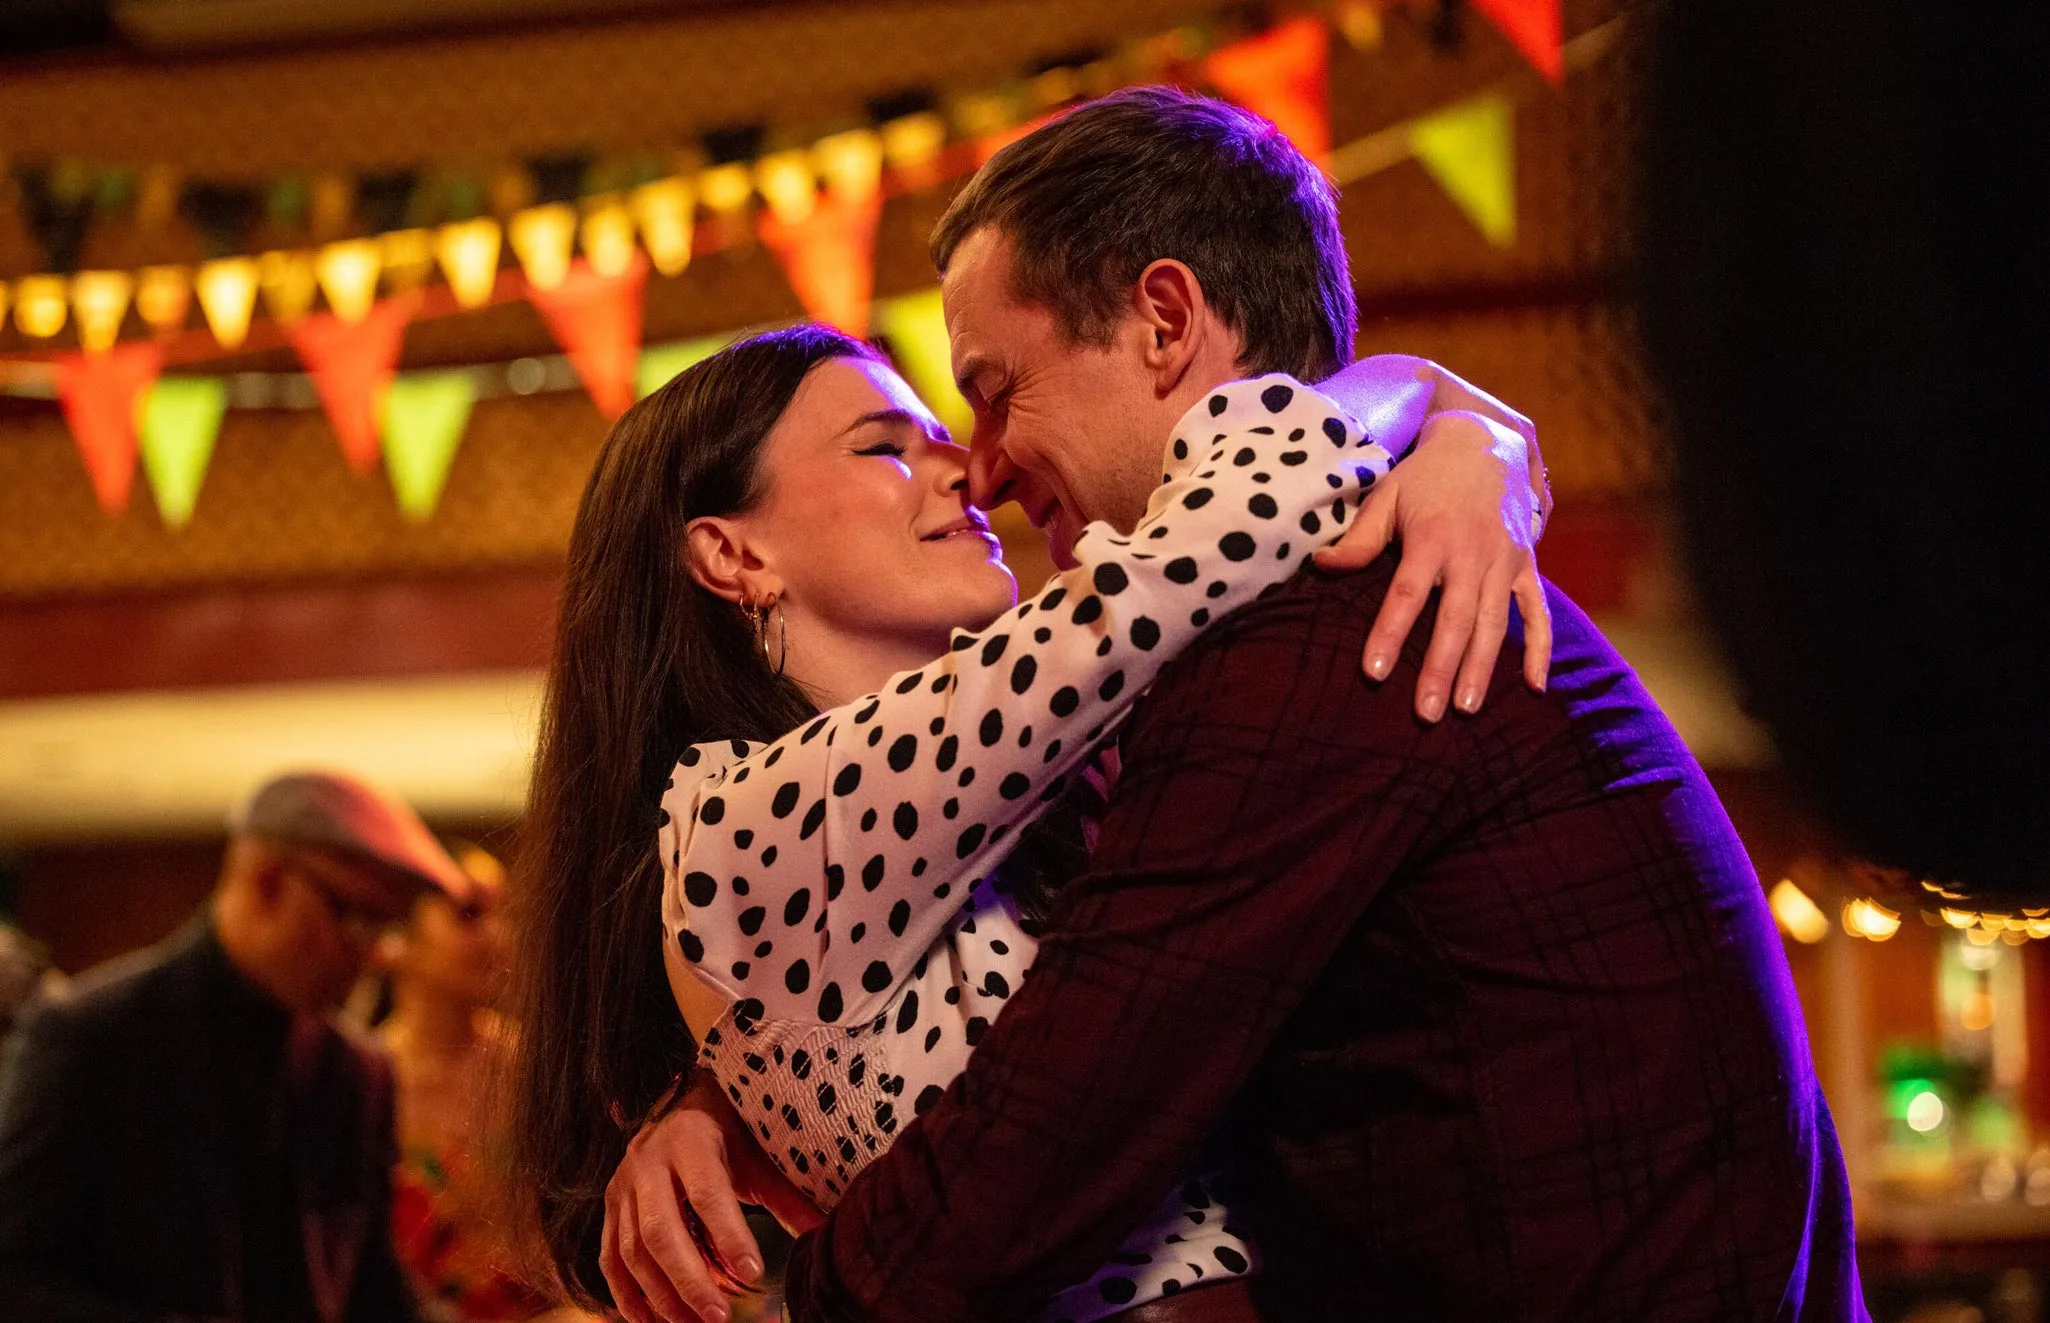 Tobias Menzies and Aisling Bea in Episode #2.4 (2021)